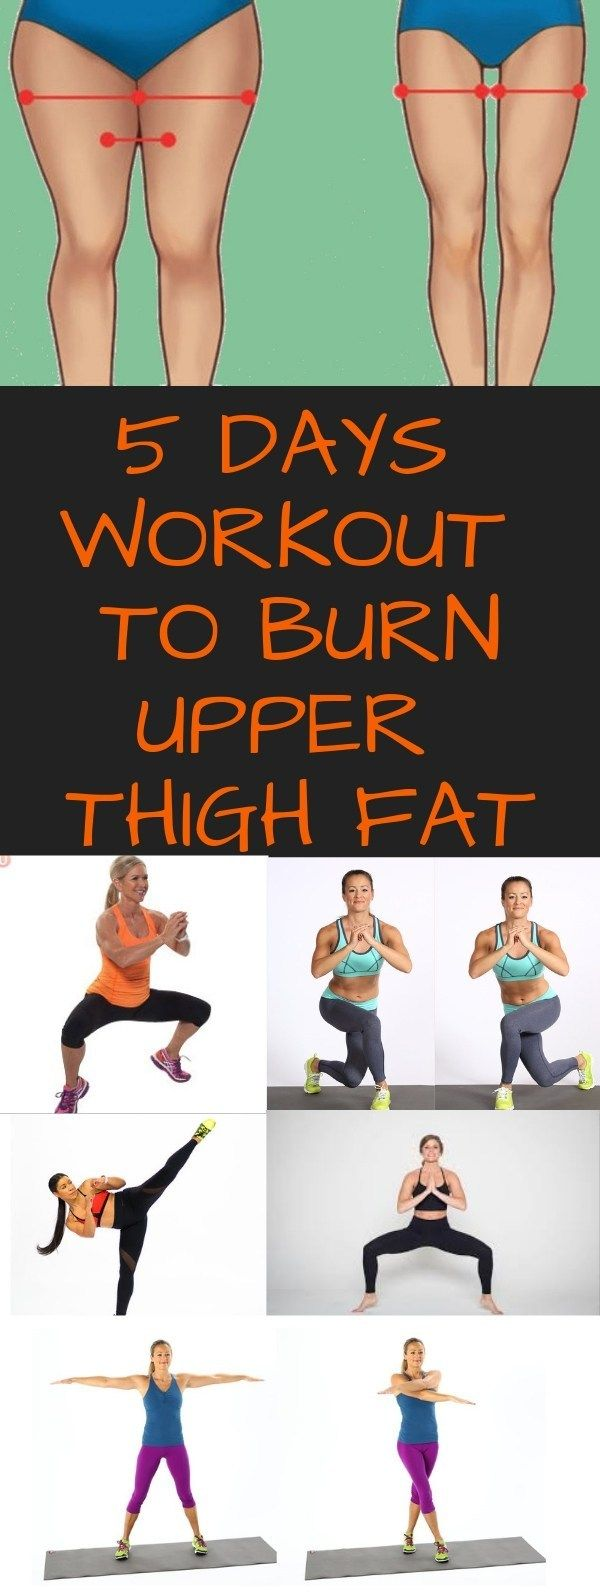 5 DAYS WORKOUT ROUTINE TO GET RID OF UPPER THIGH FAT